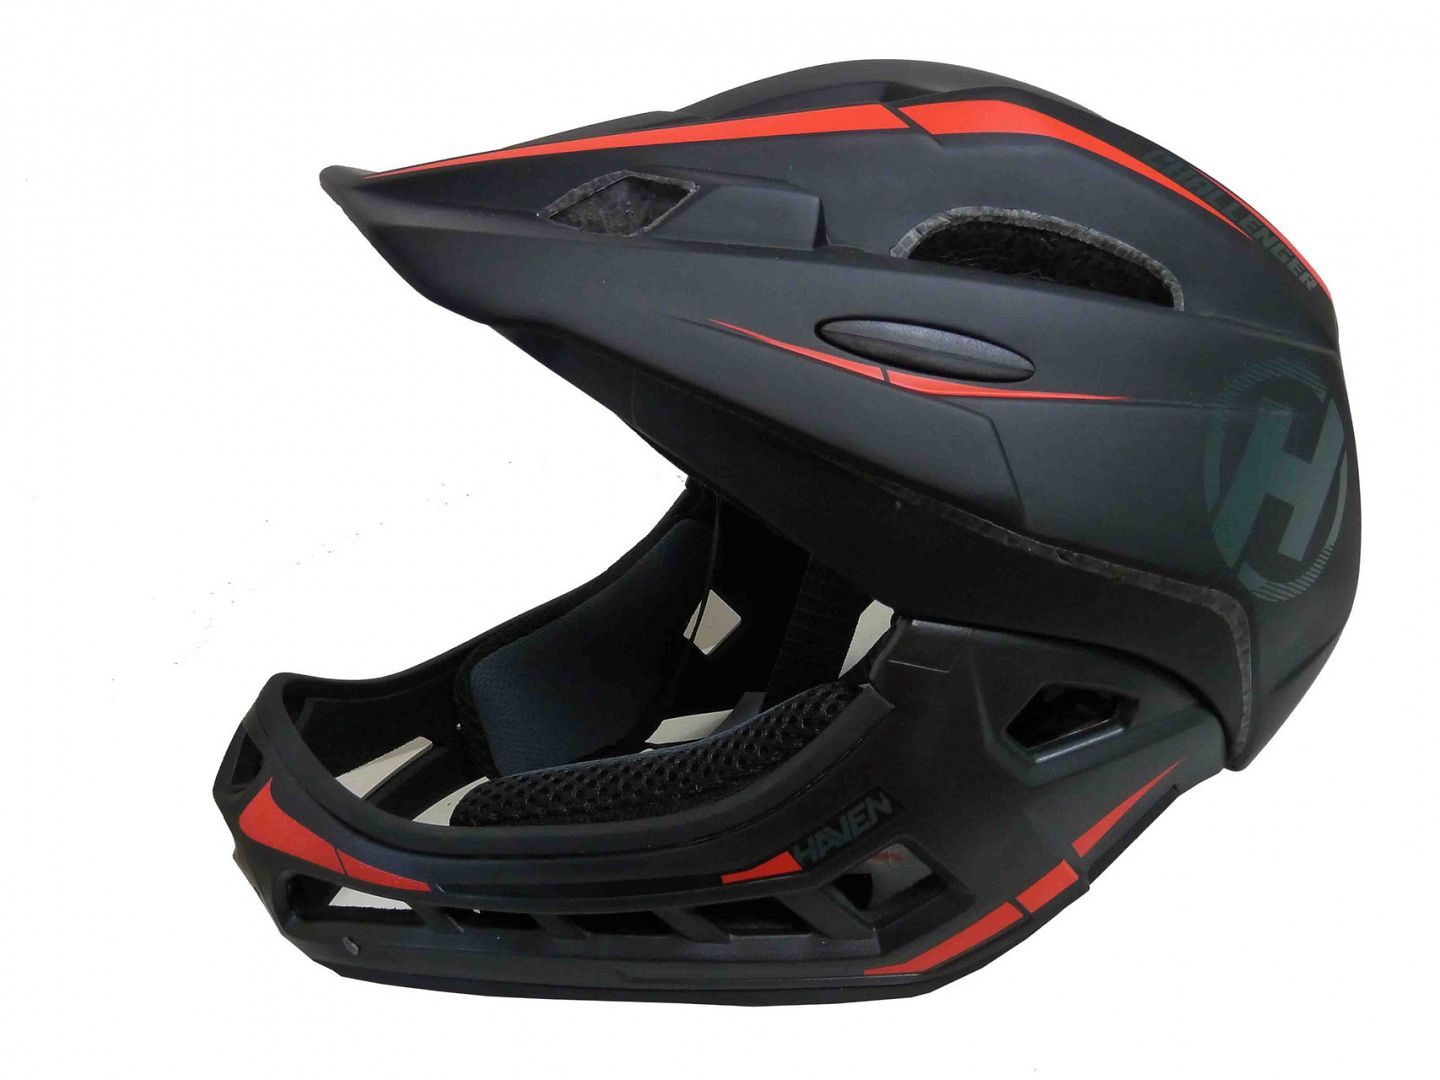 Přilba HAVEN CHALLENGER black/red, vel. S/M